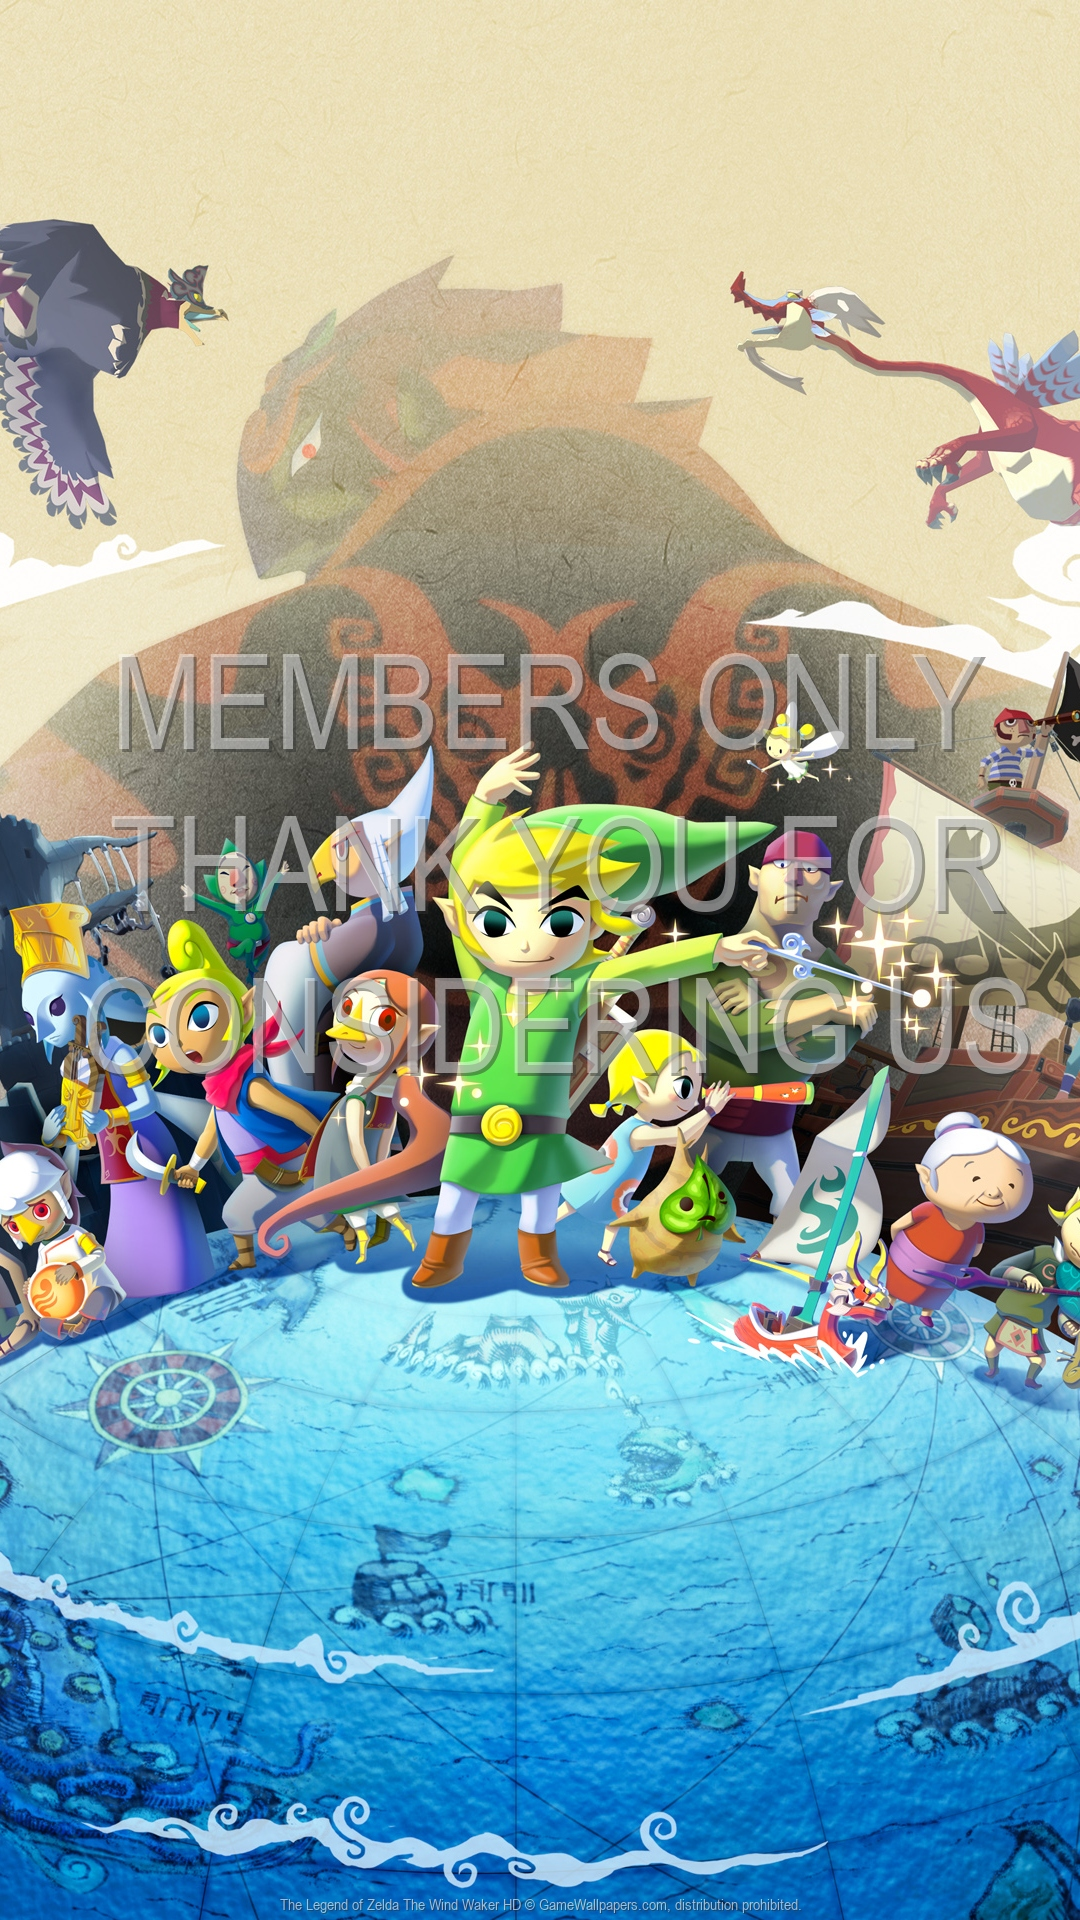 The Legend of Zelda: The Wind Waker HD 1920x1080 Mobiele achtergrond 01